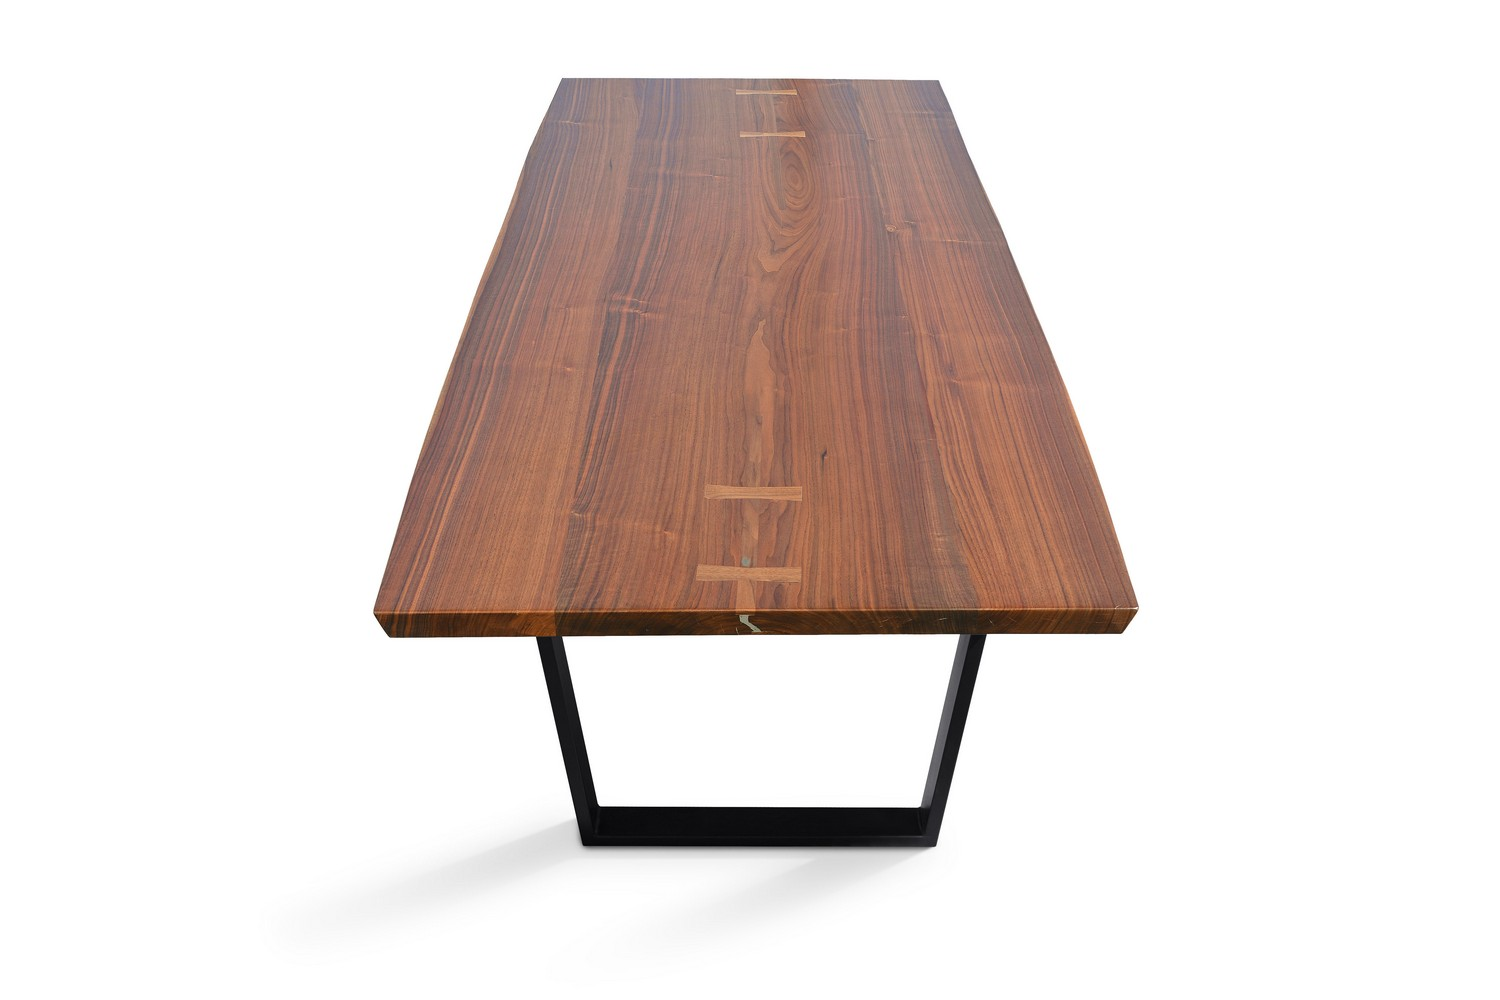 Etz & Steel Viceroy Live Edge Table Black Base 3.jpg